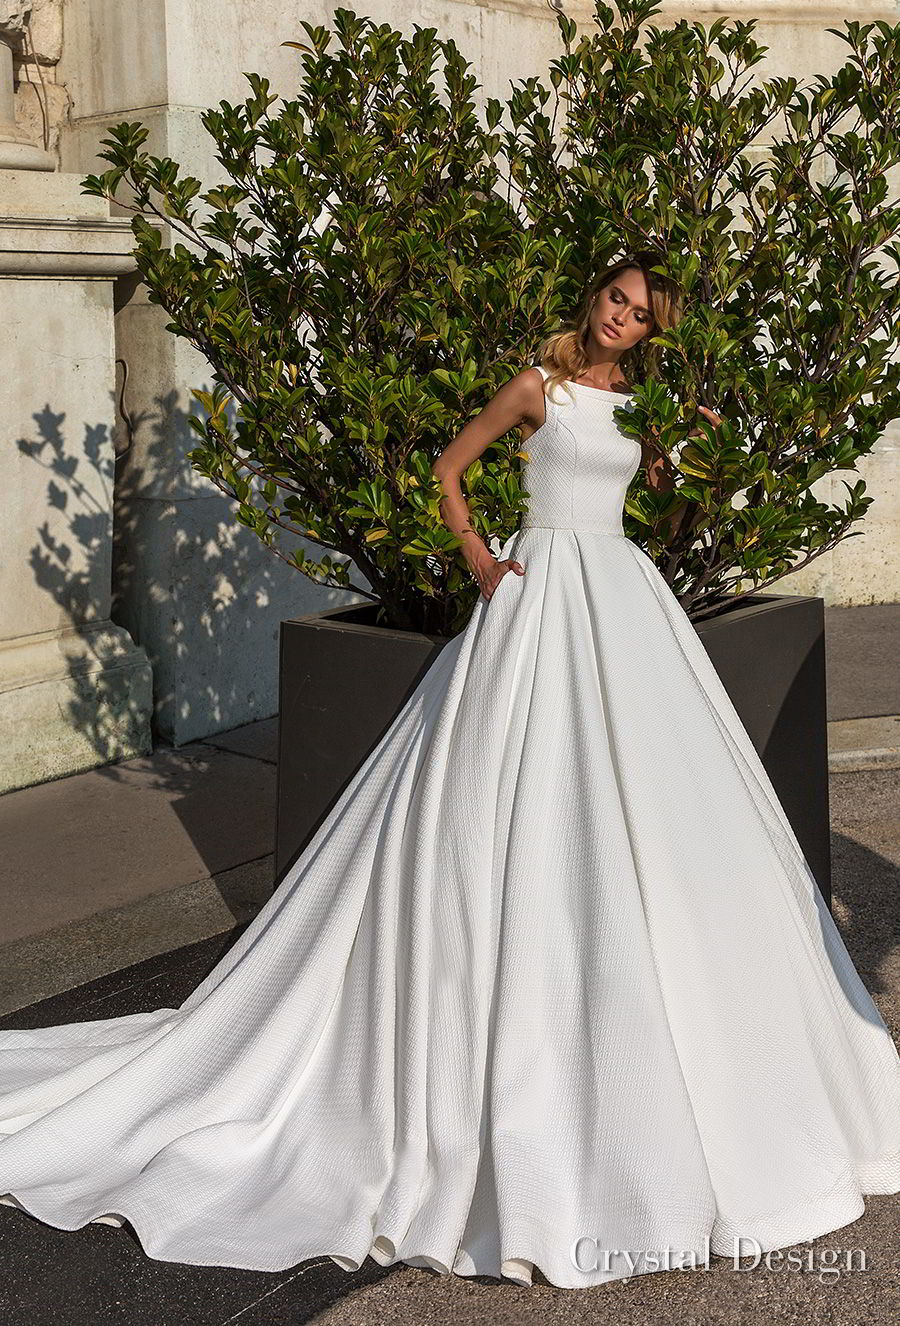 b9963b7d0e33 crystal design 2018 sleeveless bateau neck simple romantic a line wedding  dress with pockets open strap